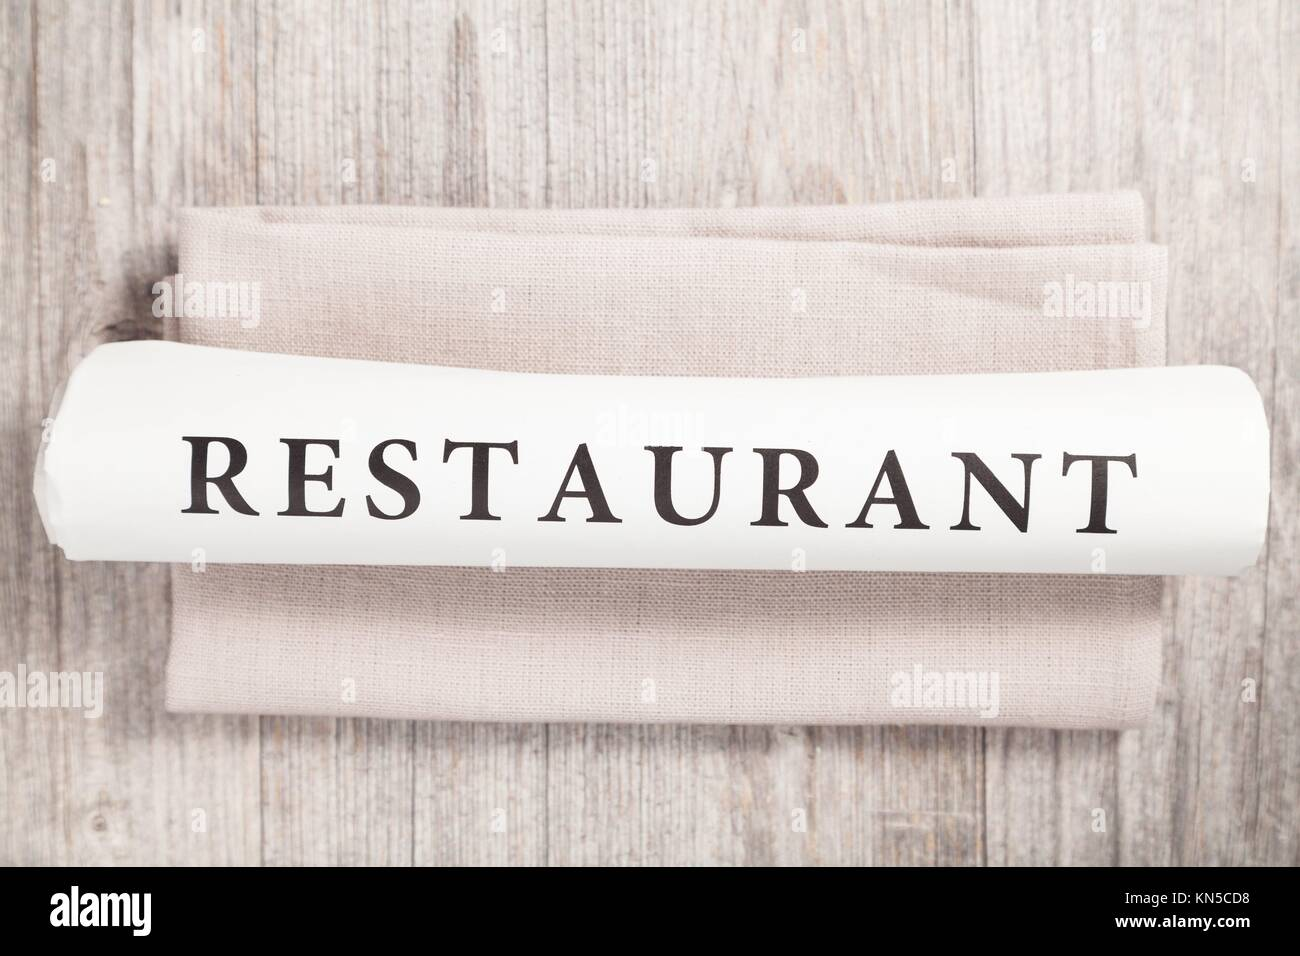 restaurant written on a newspaper. - Stock Image